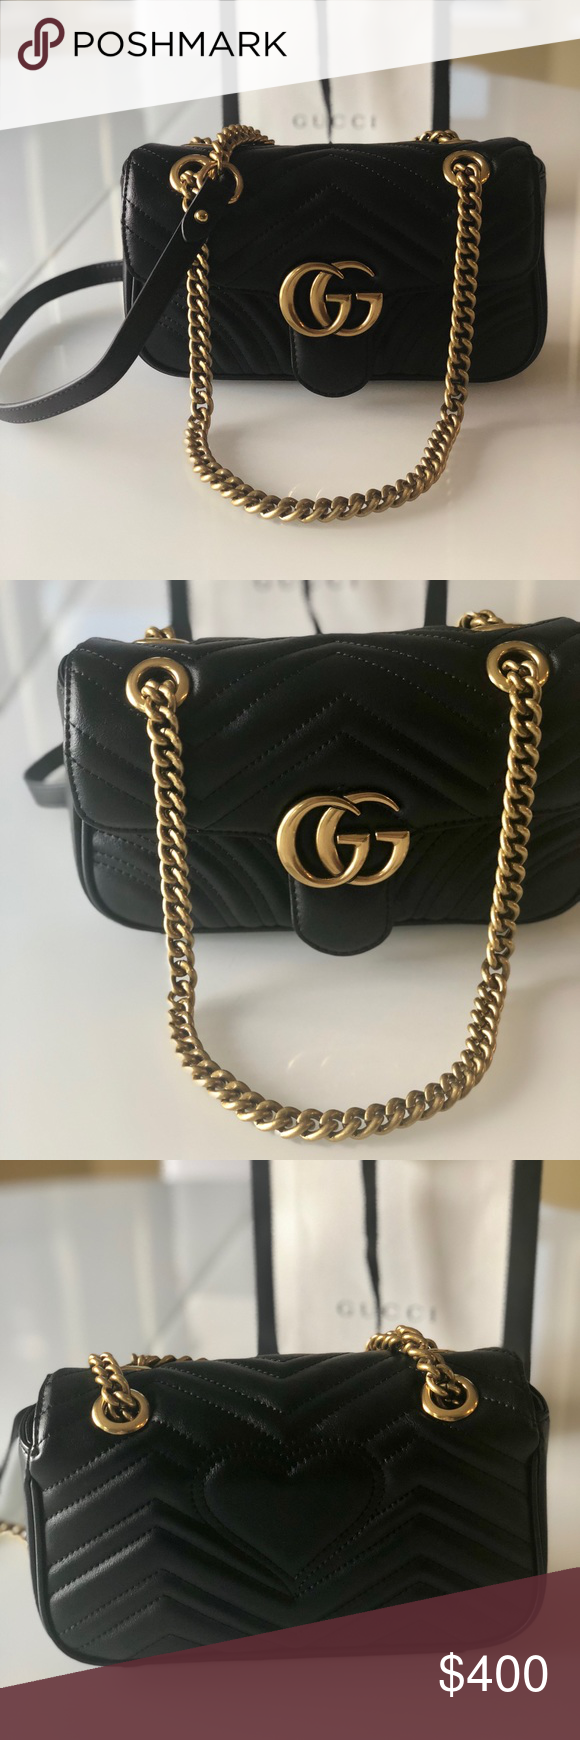 934e8c3aebf Gucci Bag Marmont The most popular Gucci bag! Genuine Leather! Excellent  condition! Worn just once!!! Gucci Bags Mini Bags